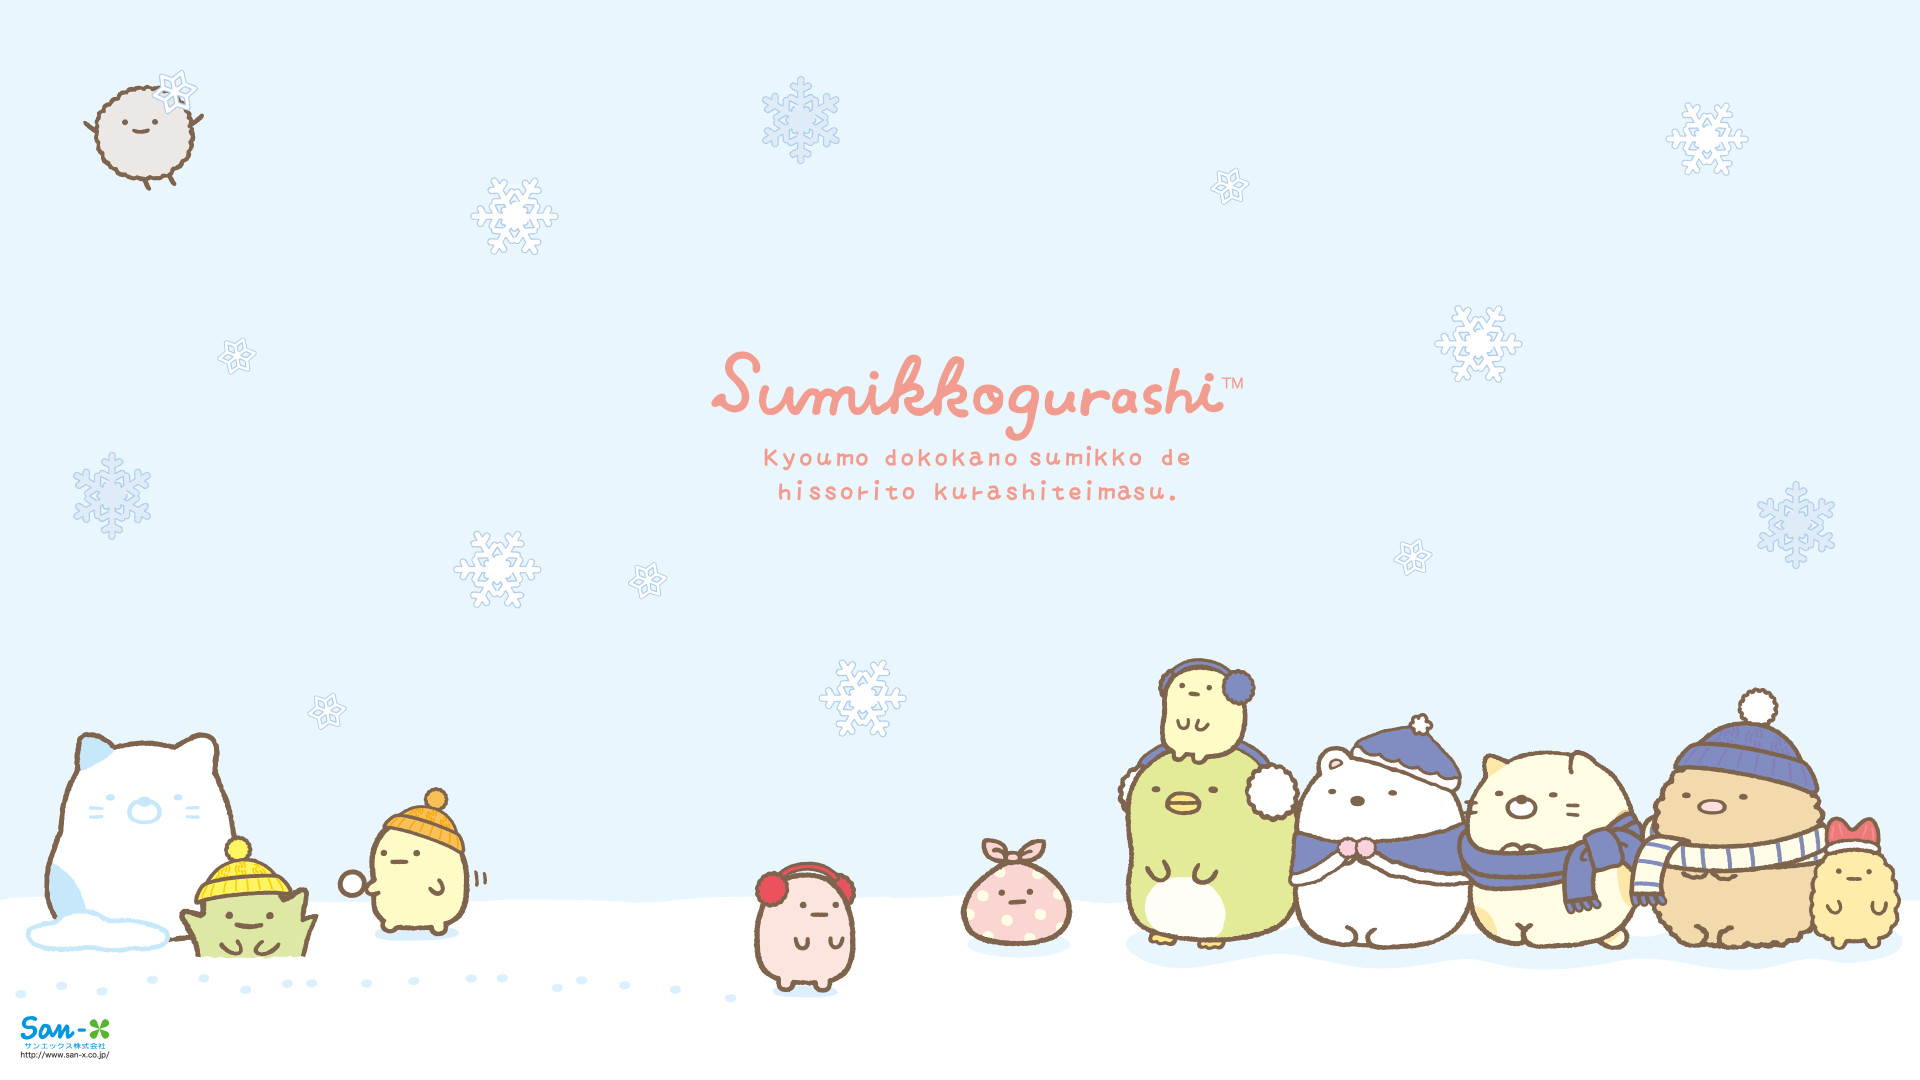 1920x1080 New Sumikkogurashi Christmas Wallpaper